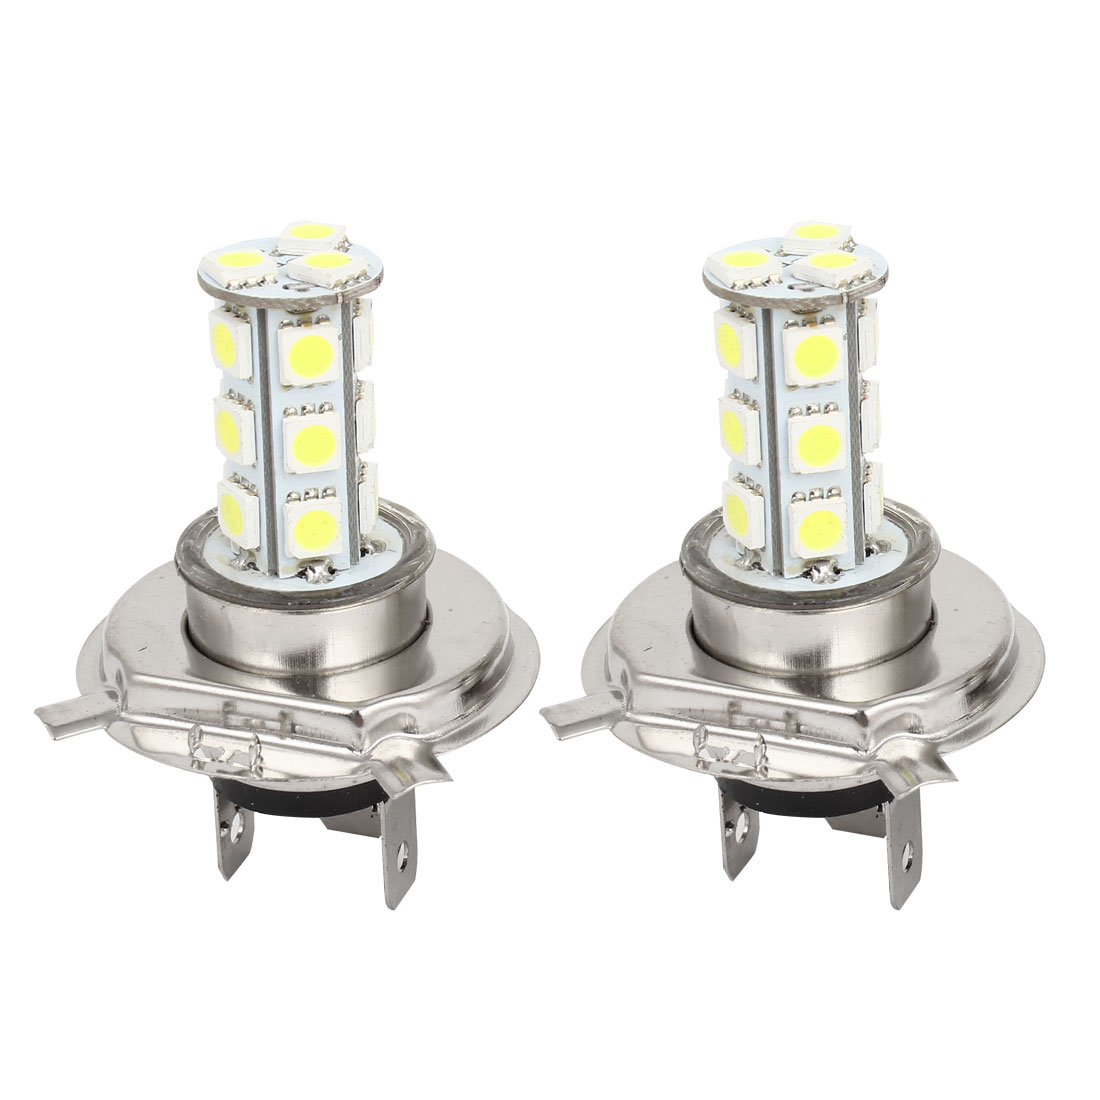 2 Pcs H4 12V 5050 SMD 18 LED Car Head Light Lamp Bulb DC 12V White